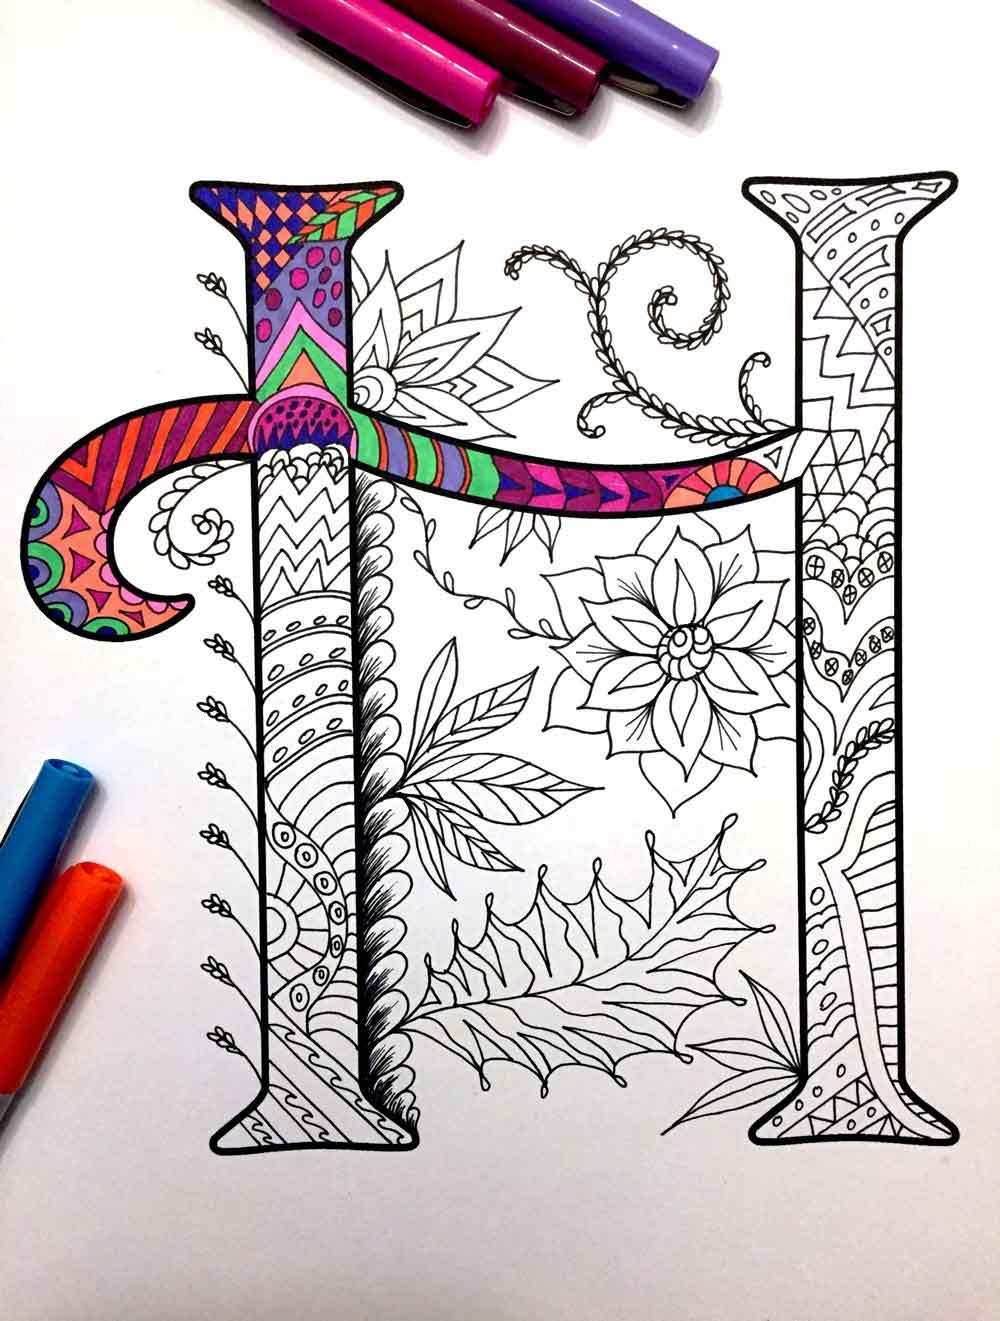 Letter H Zentangle Inspired by the font